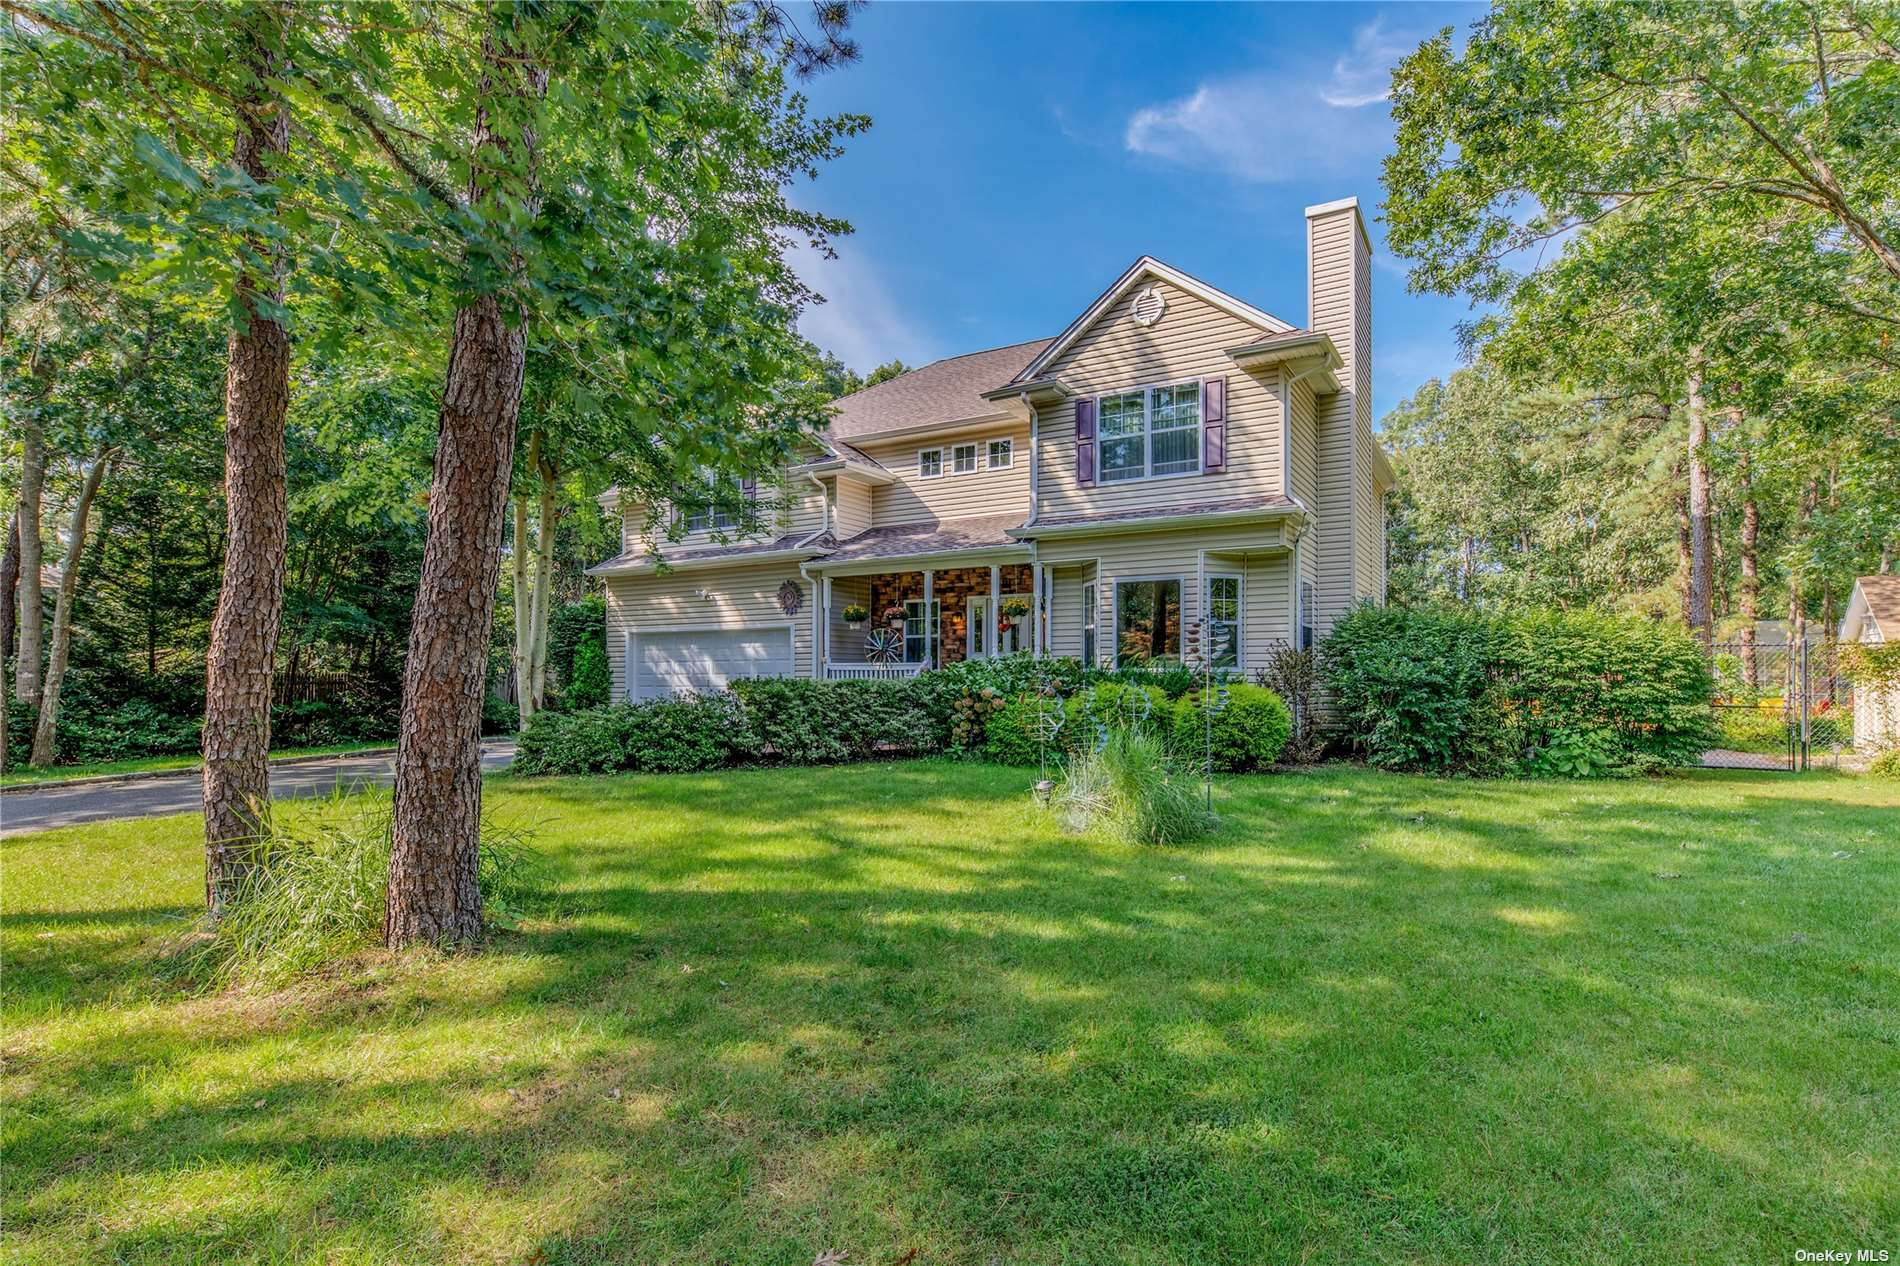 4-Bedroom House In Center Moriches